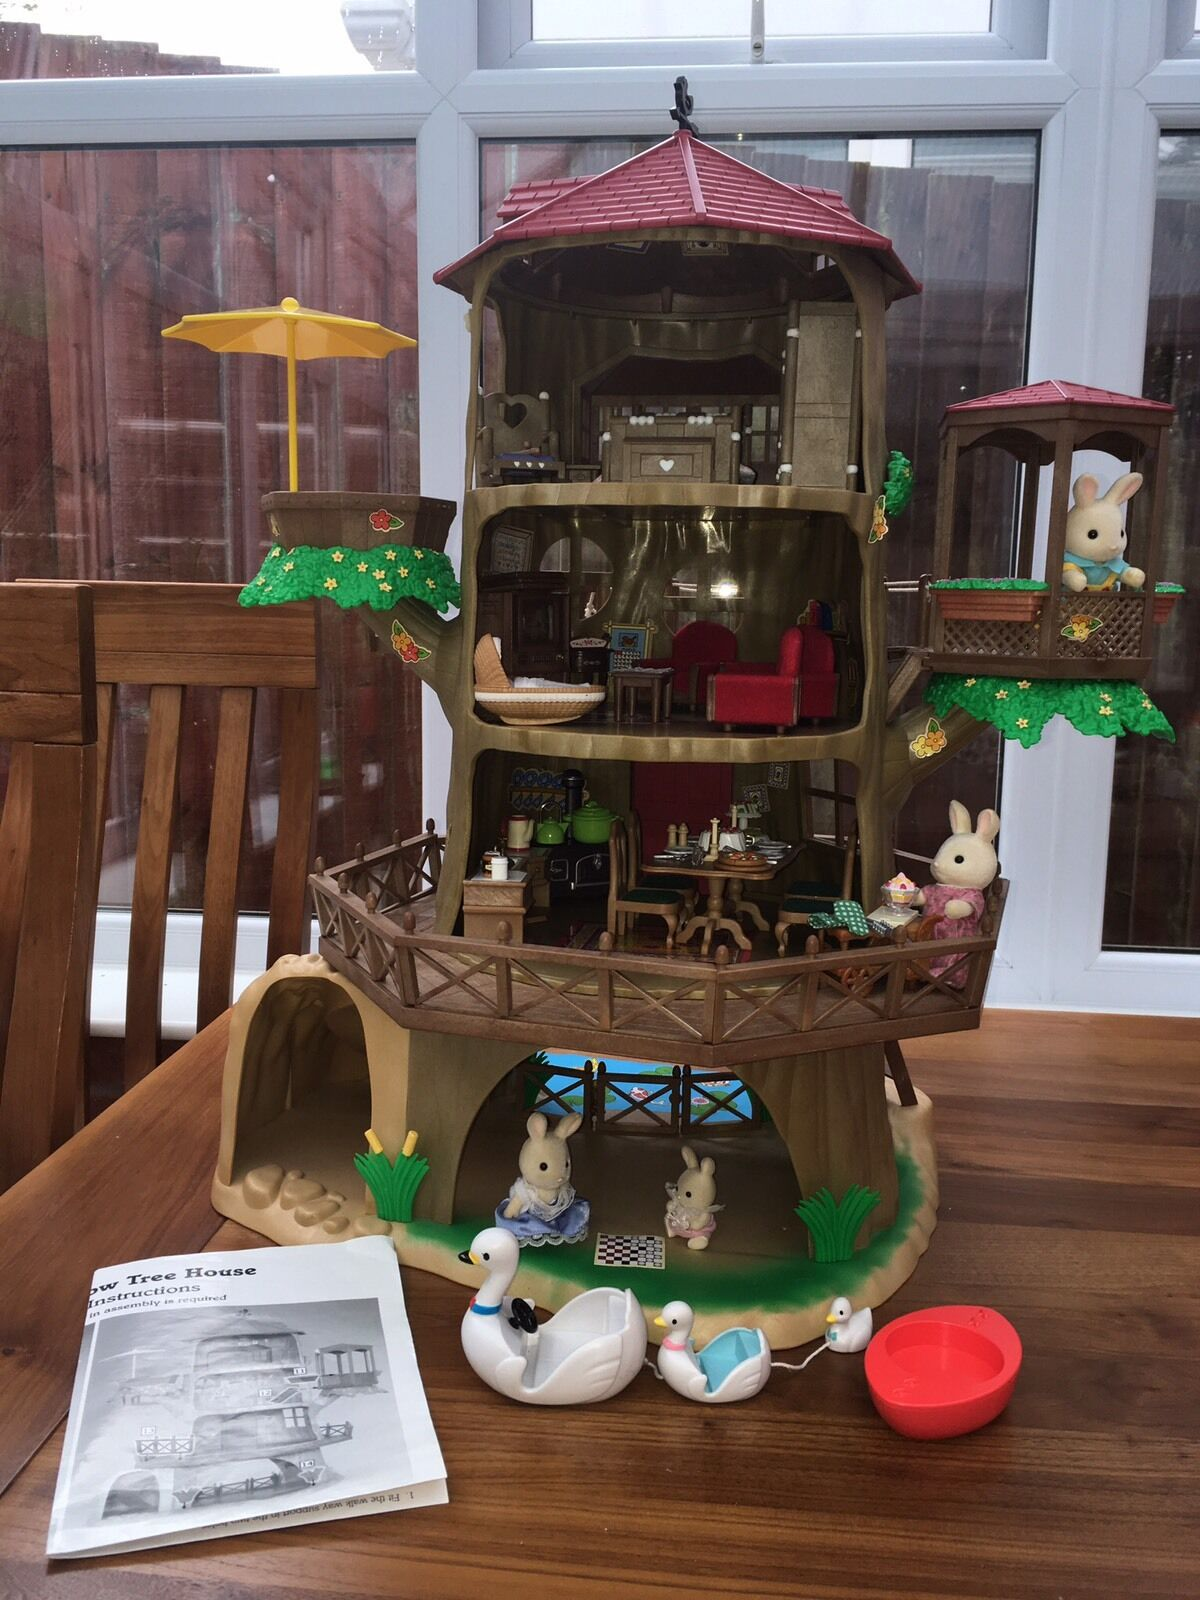 Sylvanian Families Treehouse Furniture With Rabbit Family